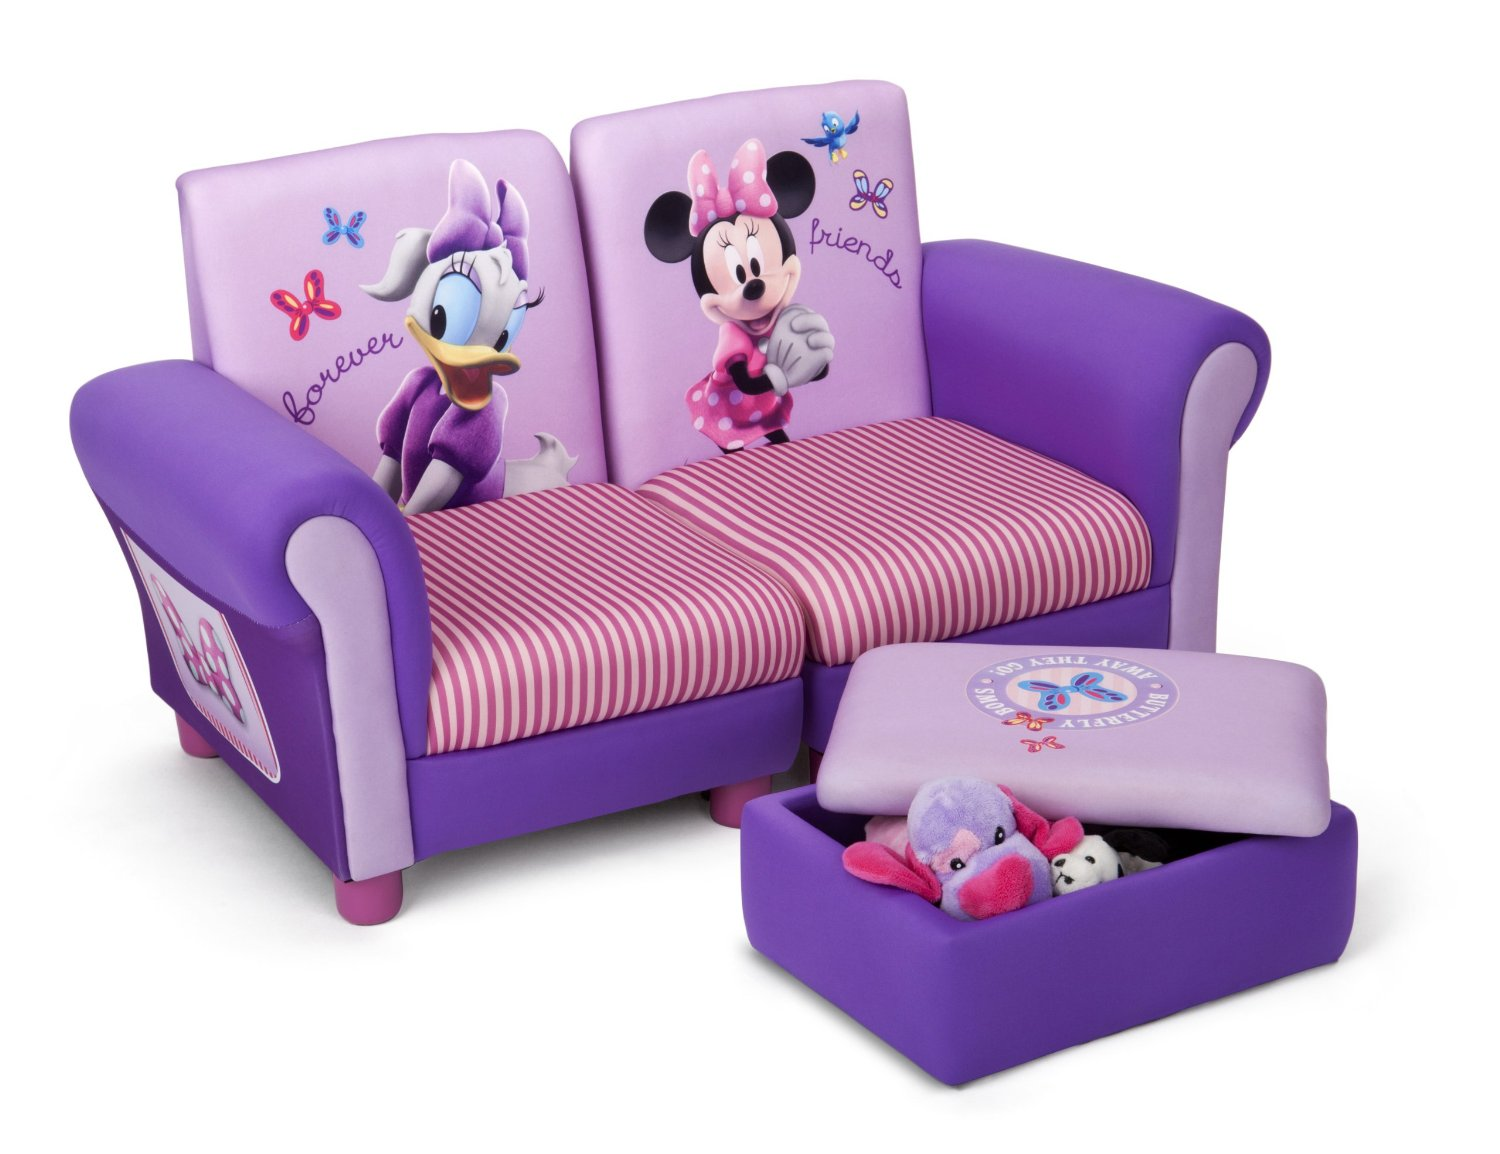 neuf canap club divisible et repose pied de rangement minnie mouse disney ebay. Black Bedroom Furniture Sets. Home Design Ideas